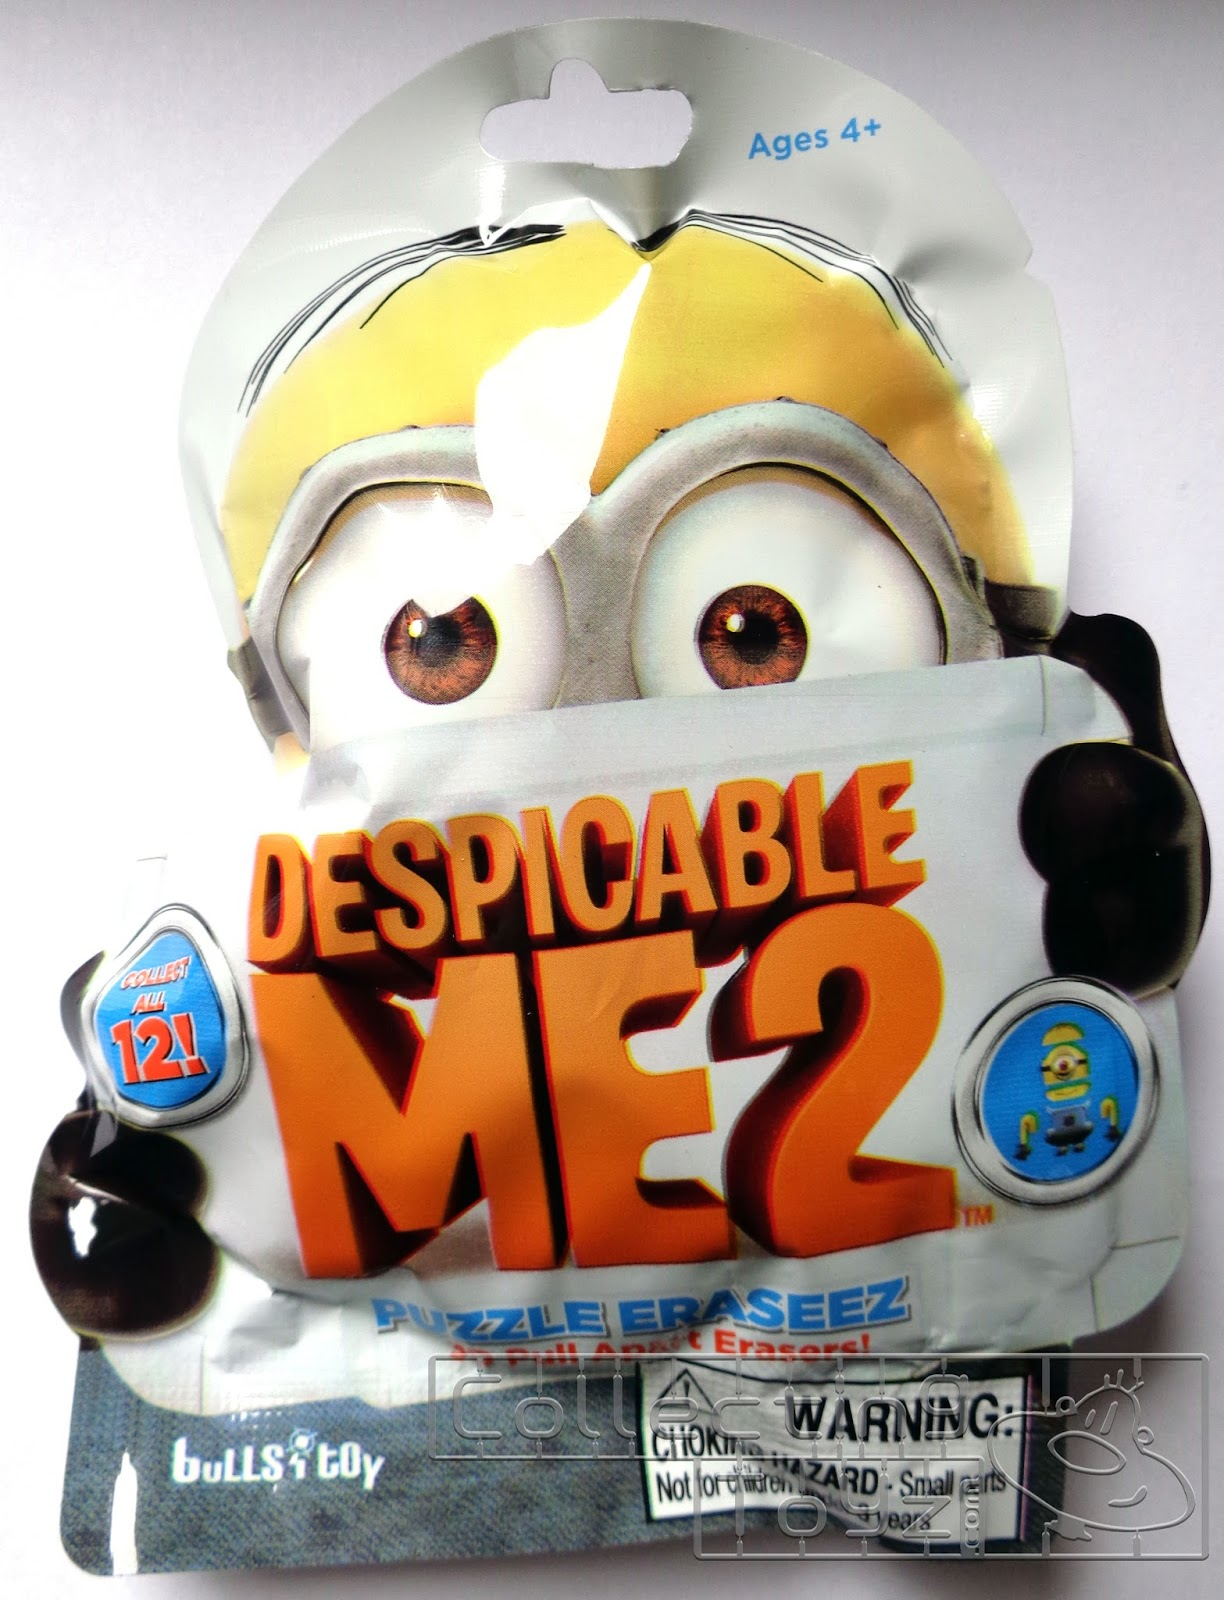 These Are Despicable Me 2 Puzzle Eraseez Or 3D Pull Apart Erasers. There  Are 12 To Collect. They Are Blind Packaged. These Are Made By Bullsitoy  (Bulls I ...